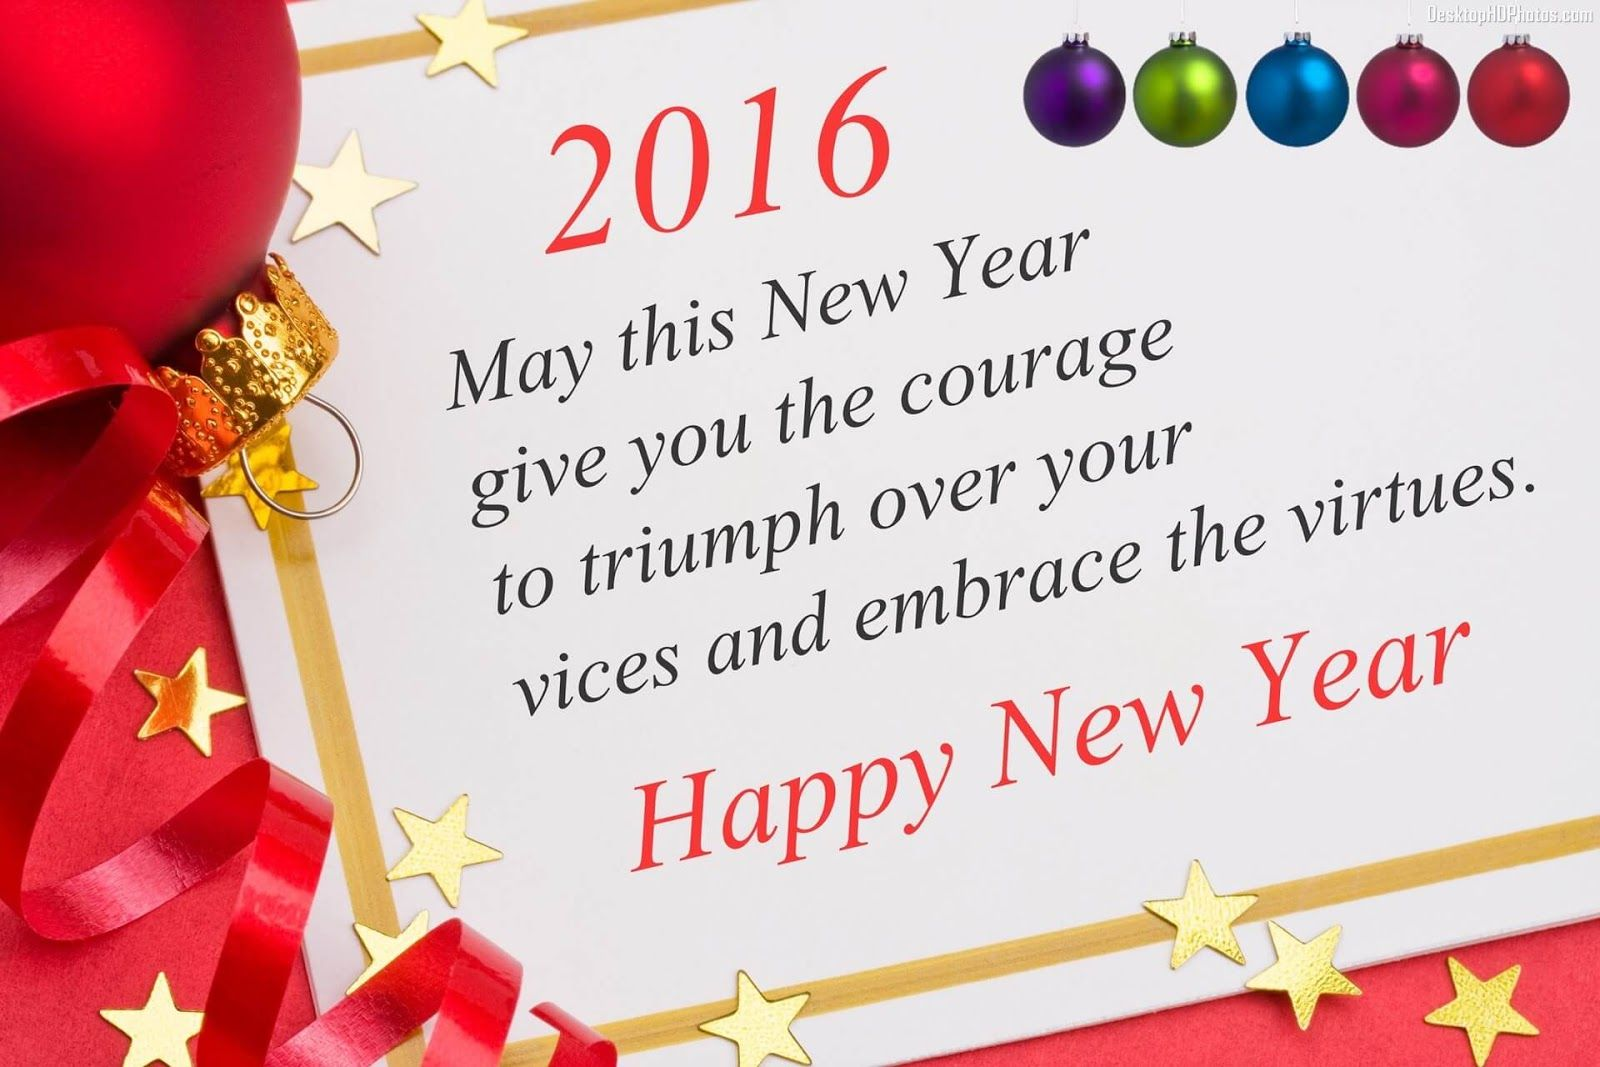 Happy new year wishes, quotes for business 2016 | Adorable ...